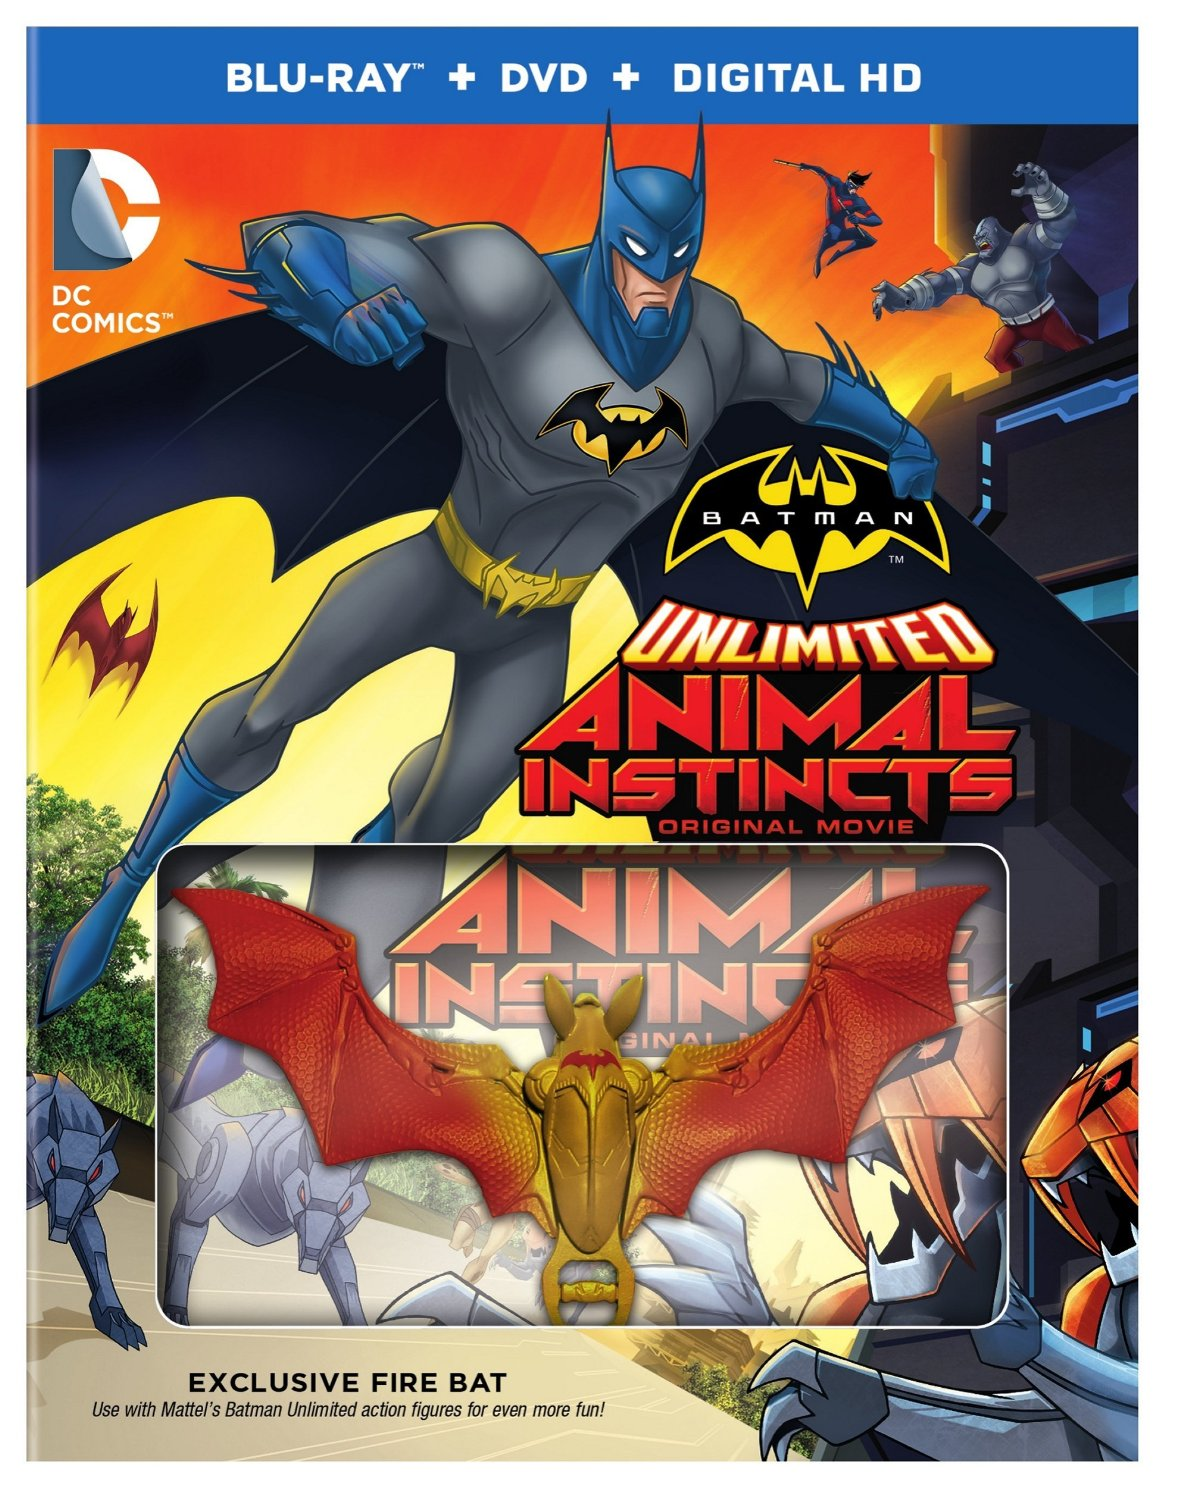 1190x1500 > Batman Unlimited: Animal Instincts Wallpapers